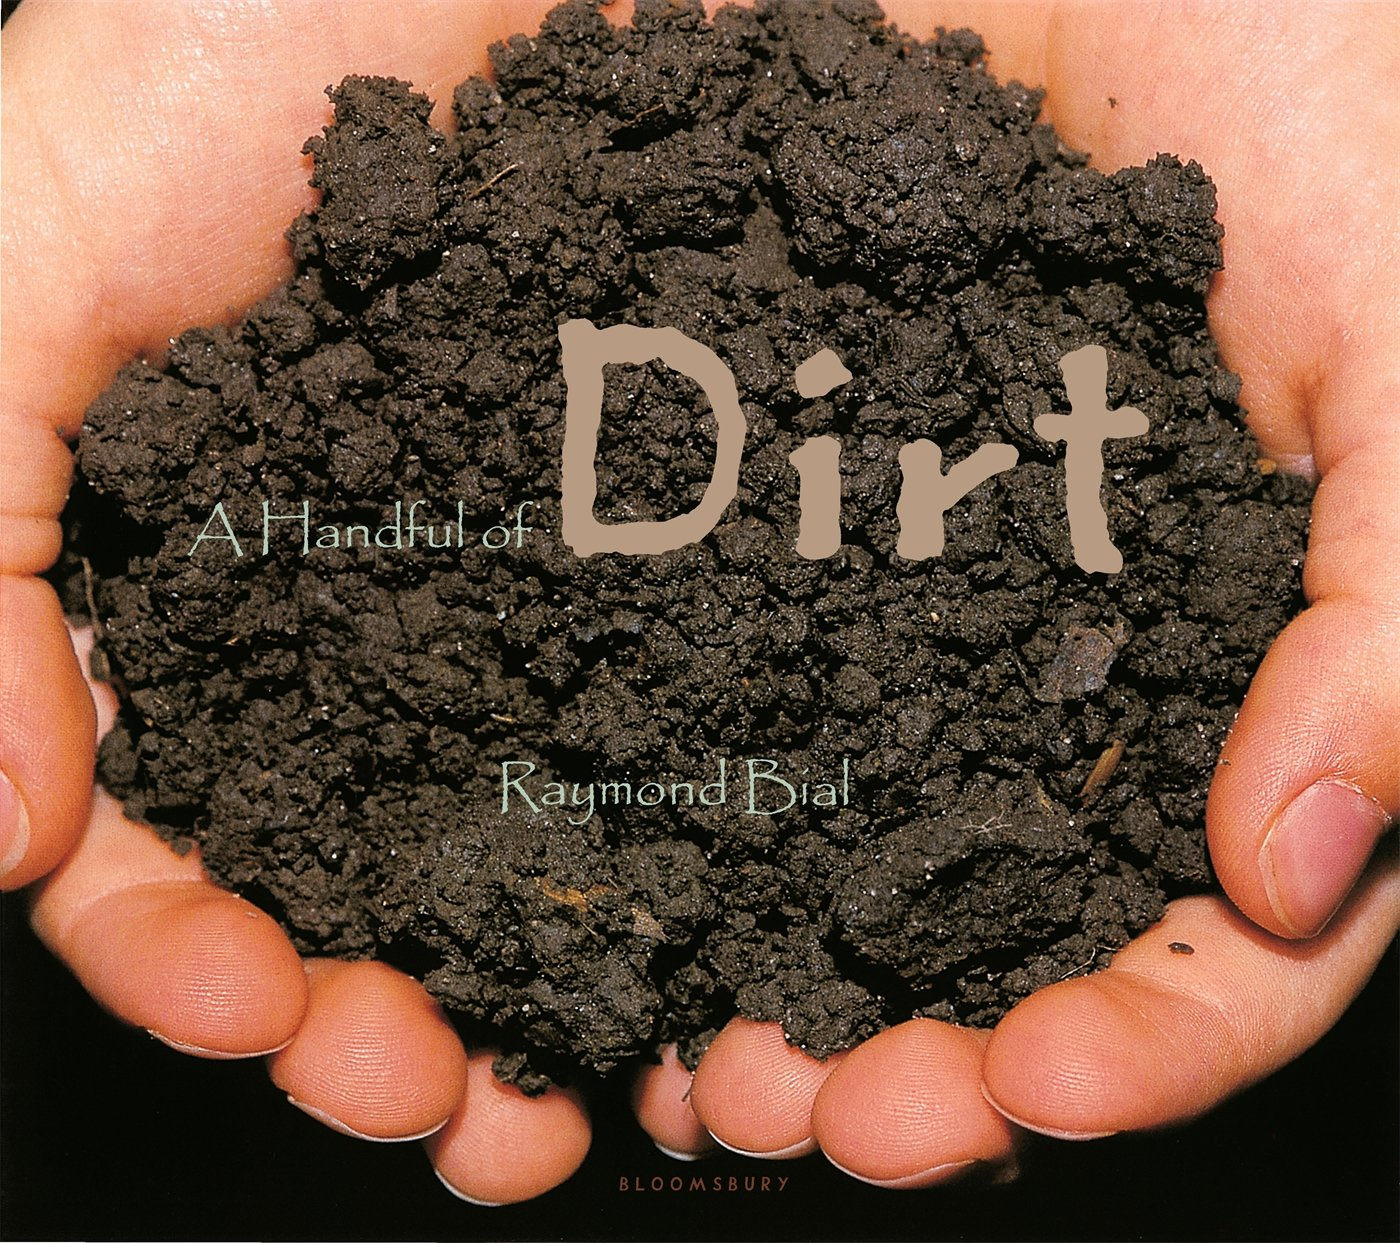 Image result for a handful of dirt by raymond bial